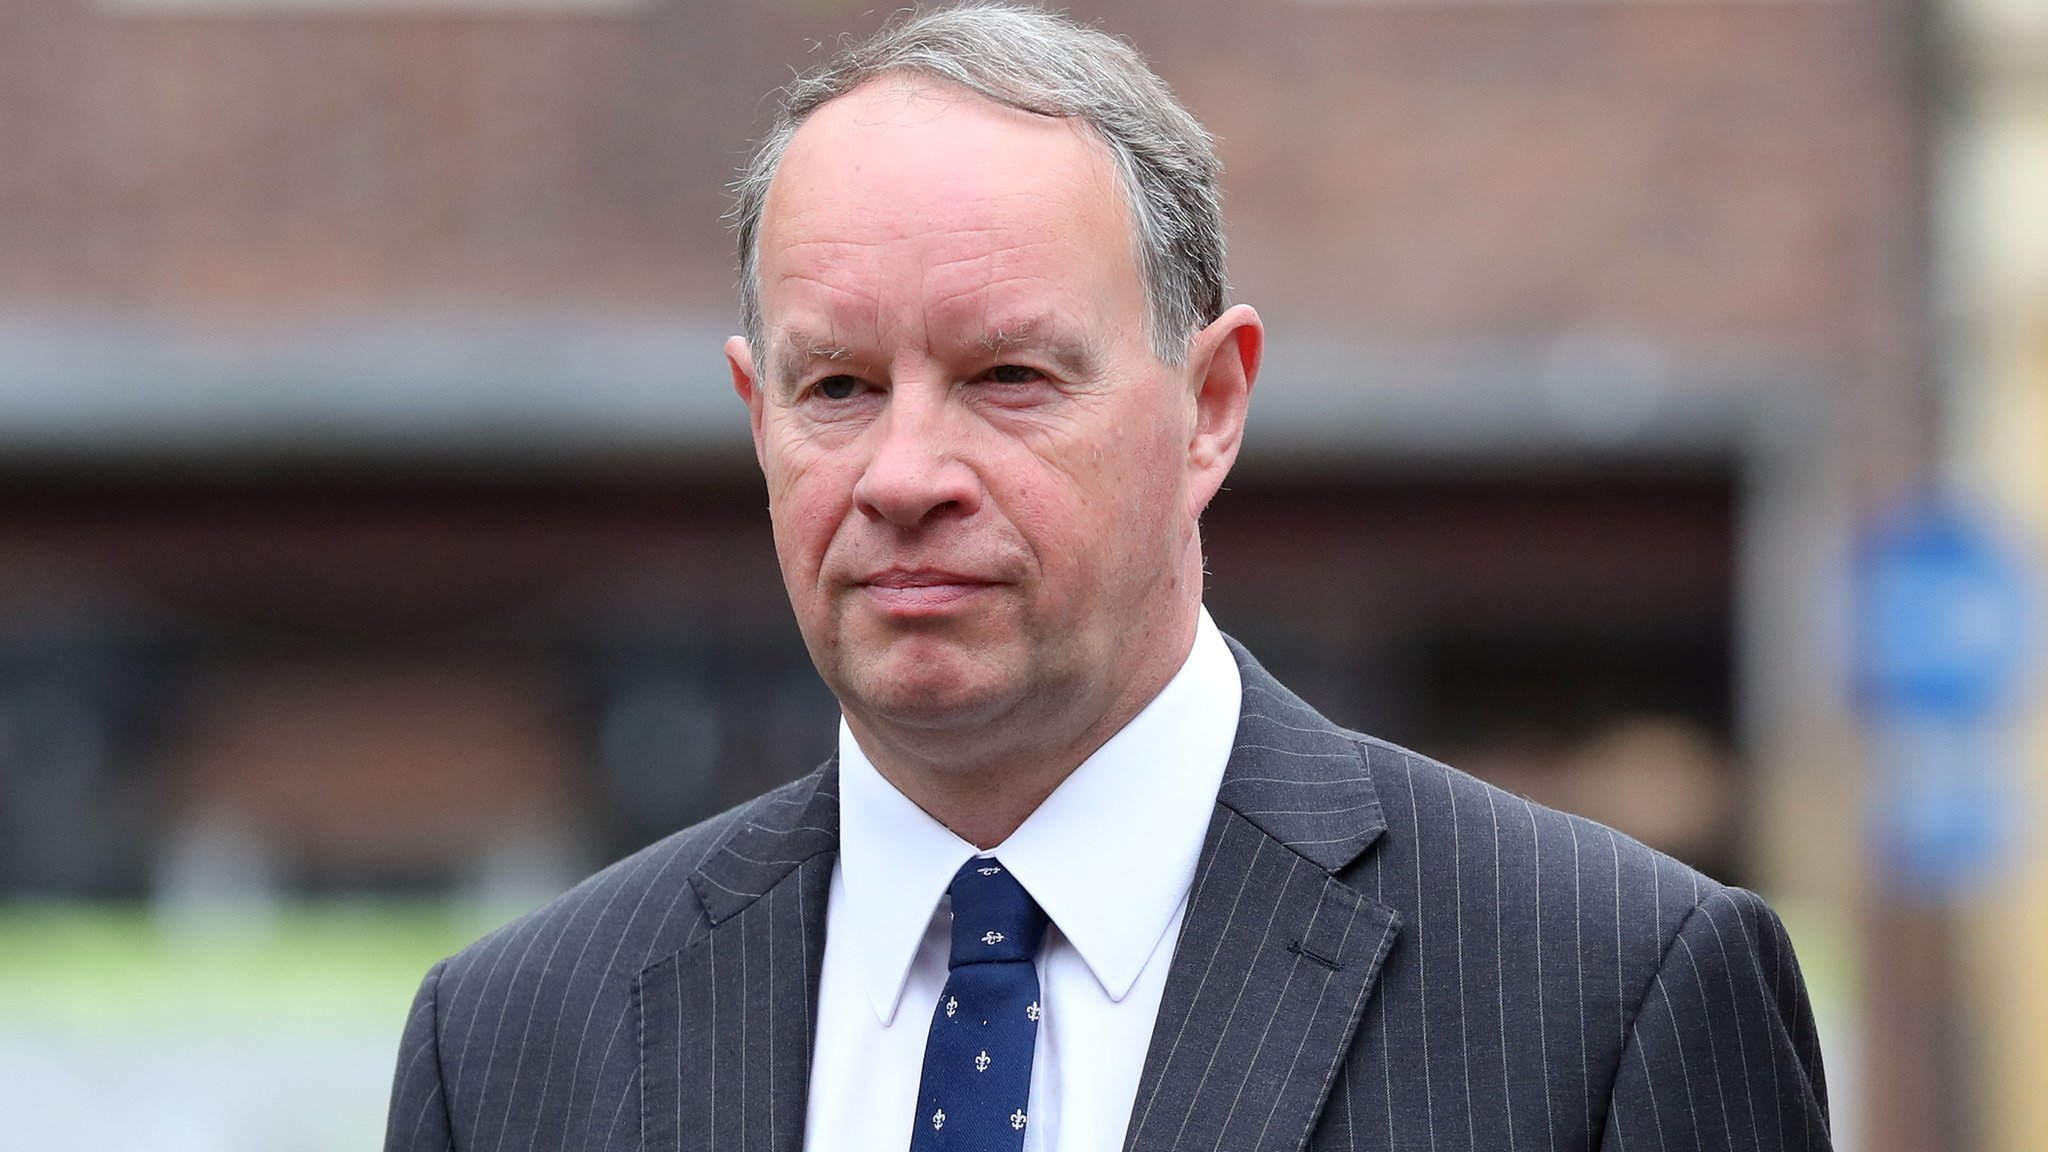 Sedbergh School Master Cleared of Sexual Foot Touching